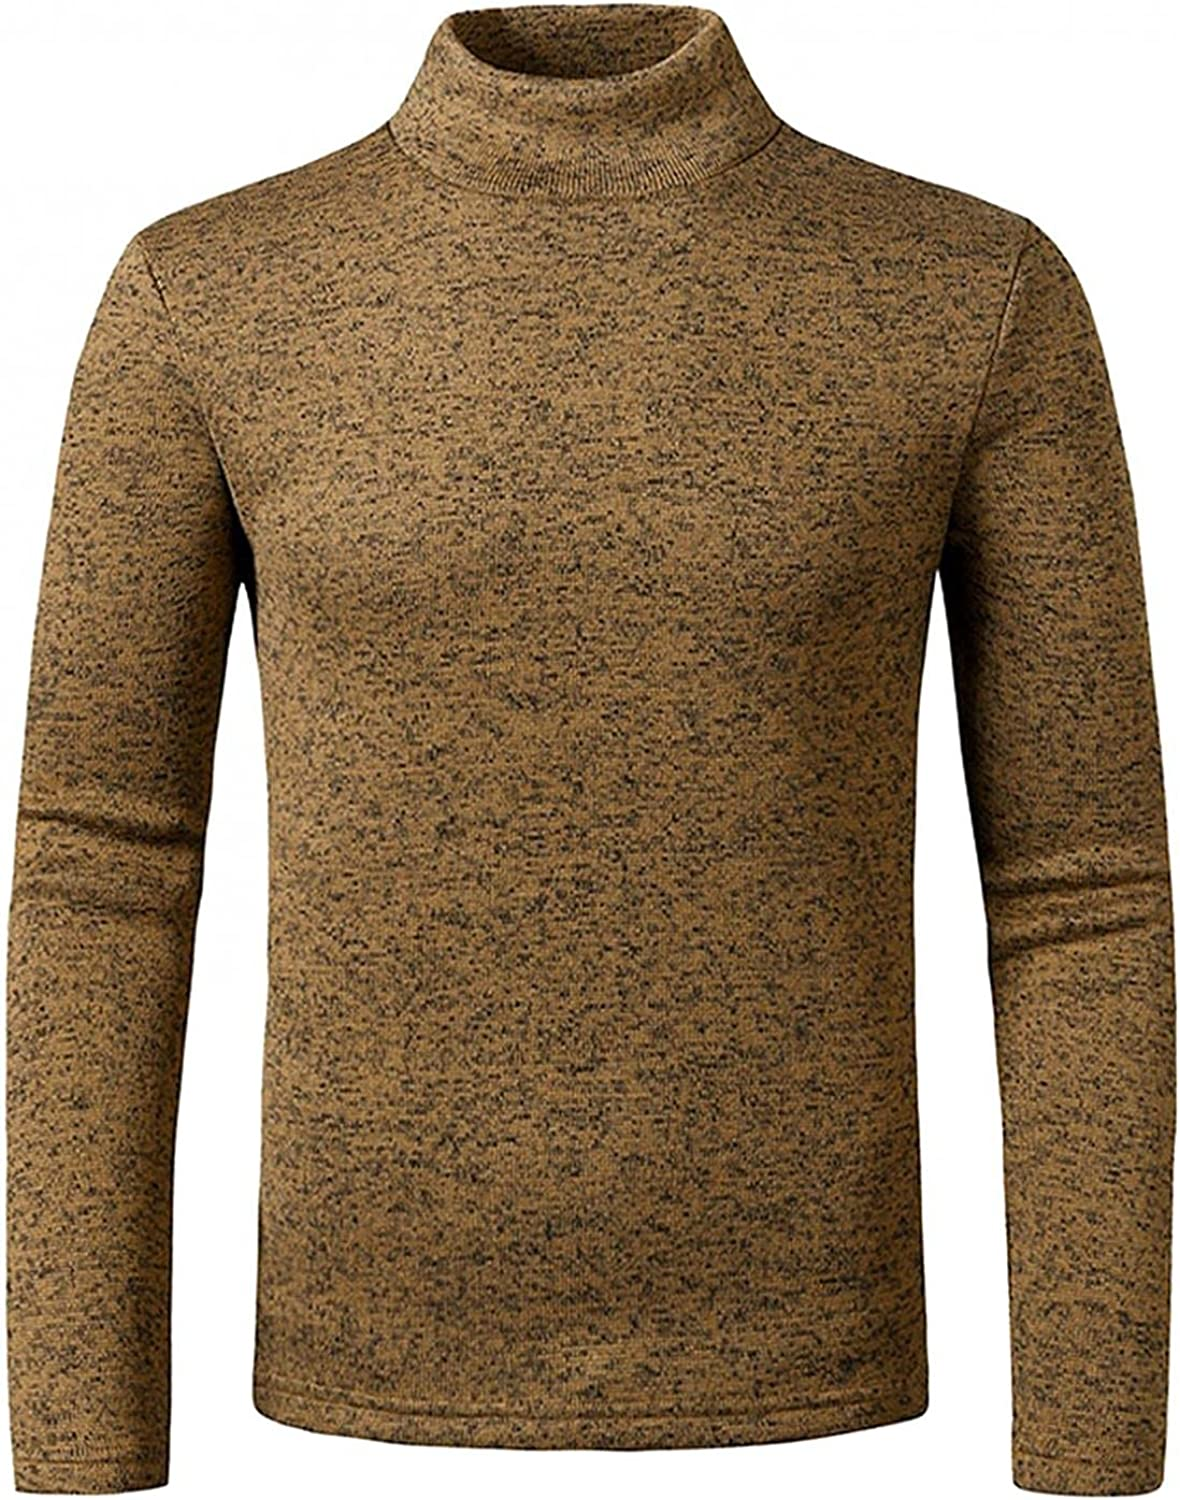 QWENTMTNTY Pullover Sweater for Men Casual Slim Fit Knitted Turtleneck Sweaters Long Sleeve Fleece Thermal Fall T Shirts